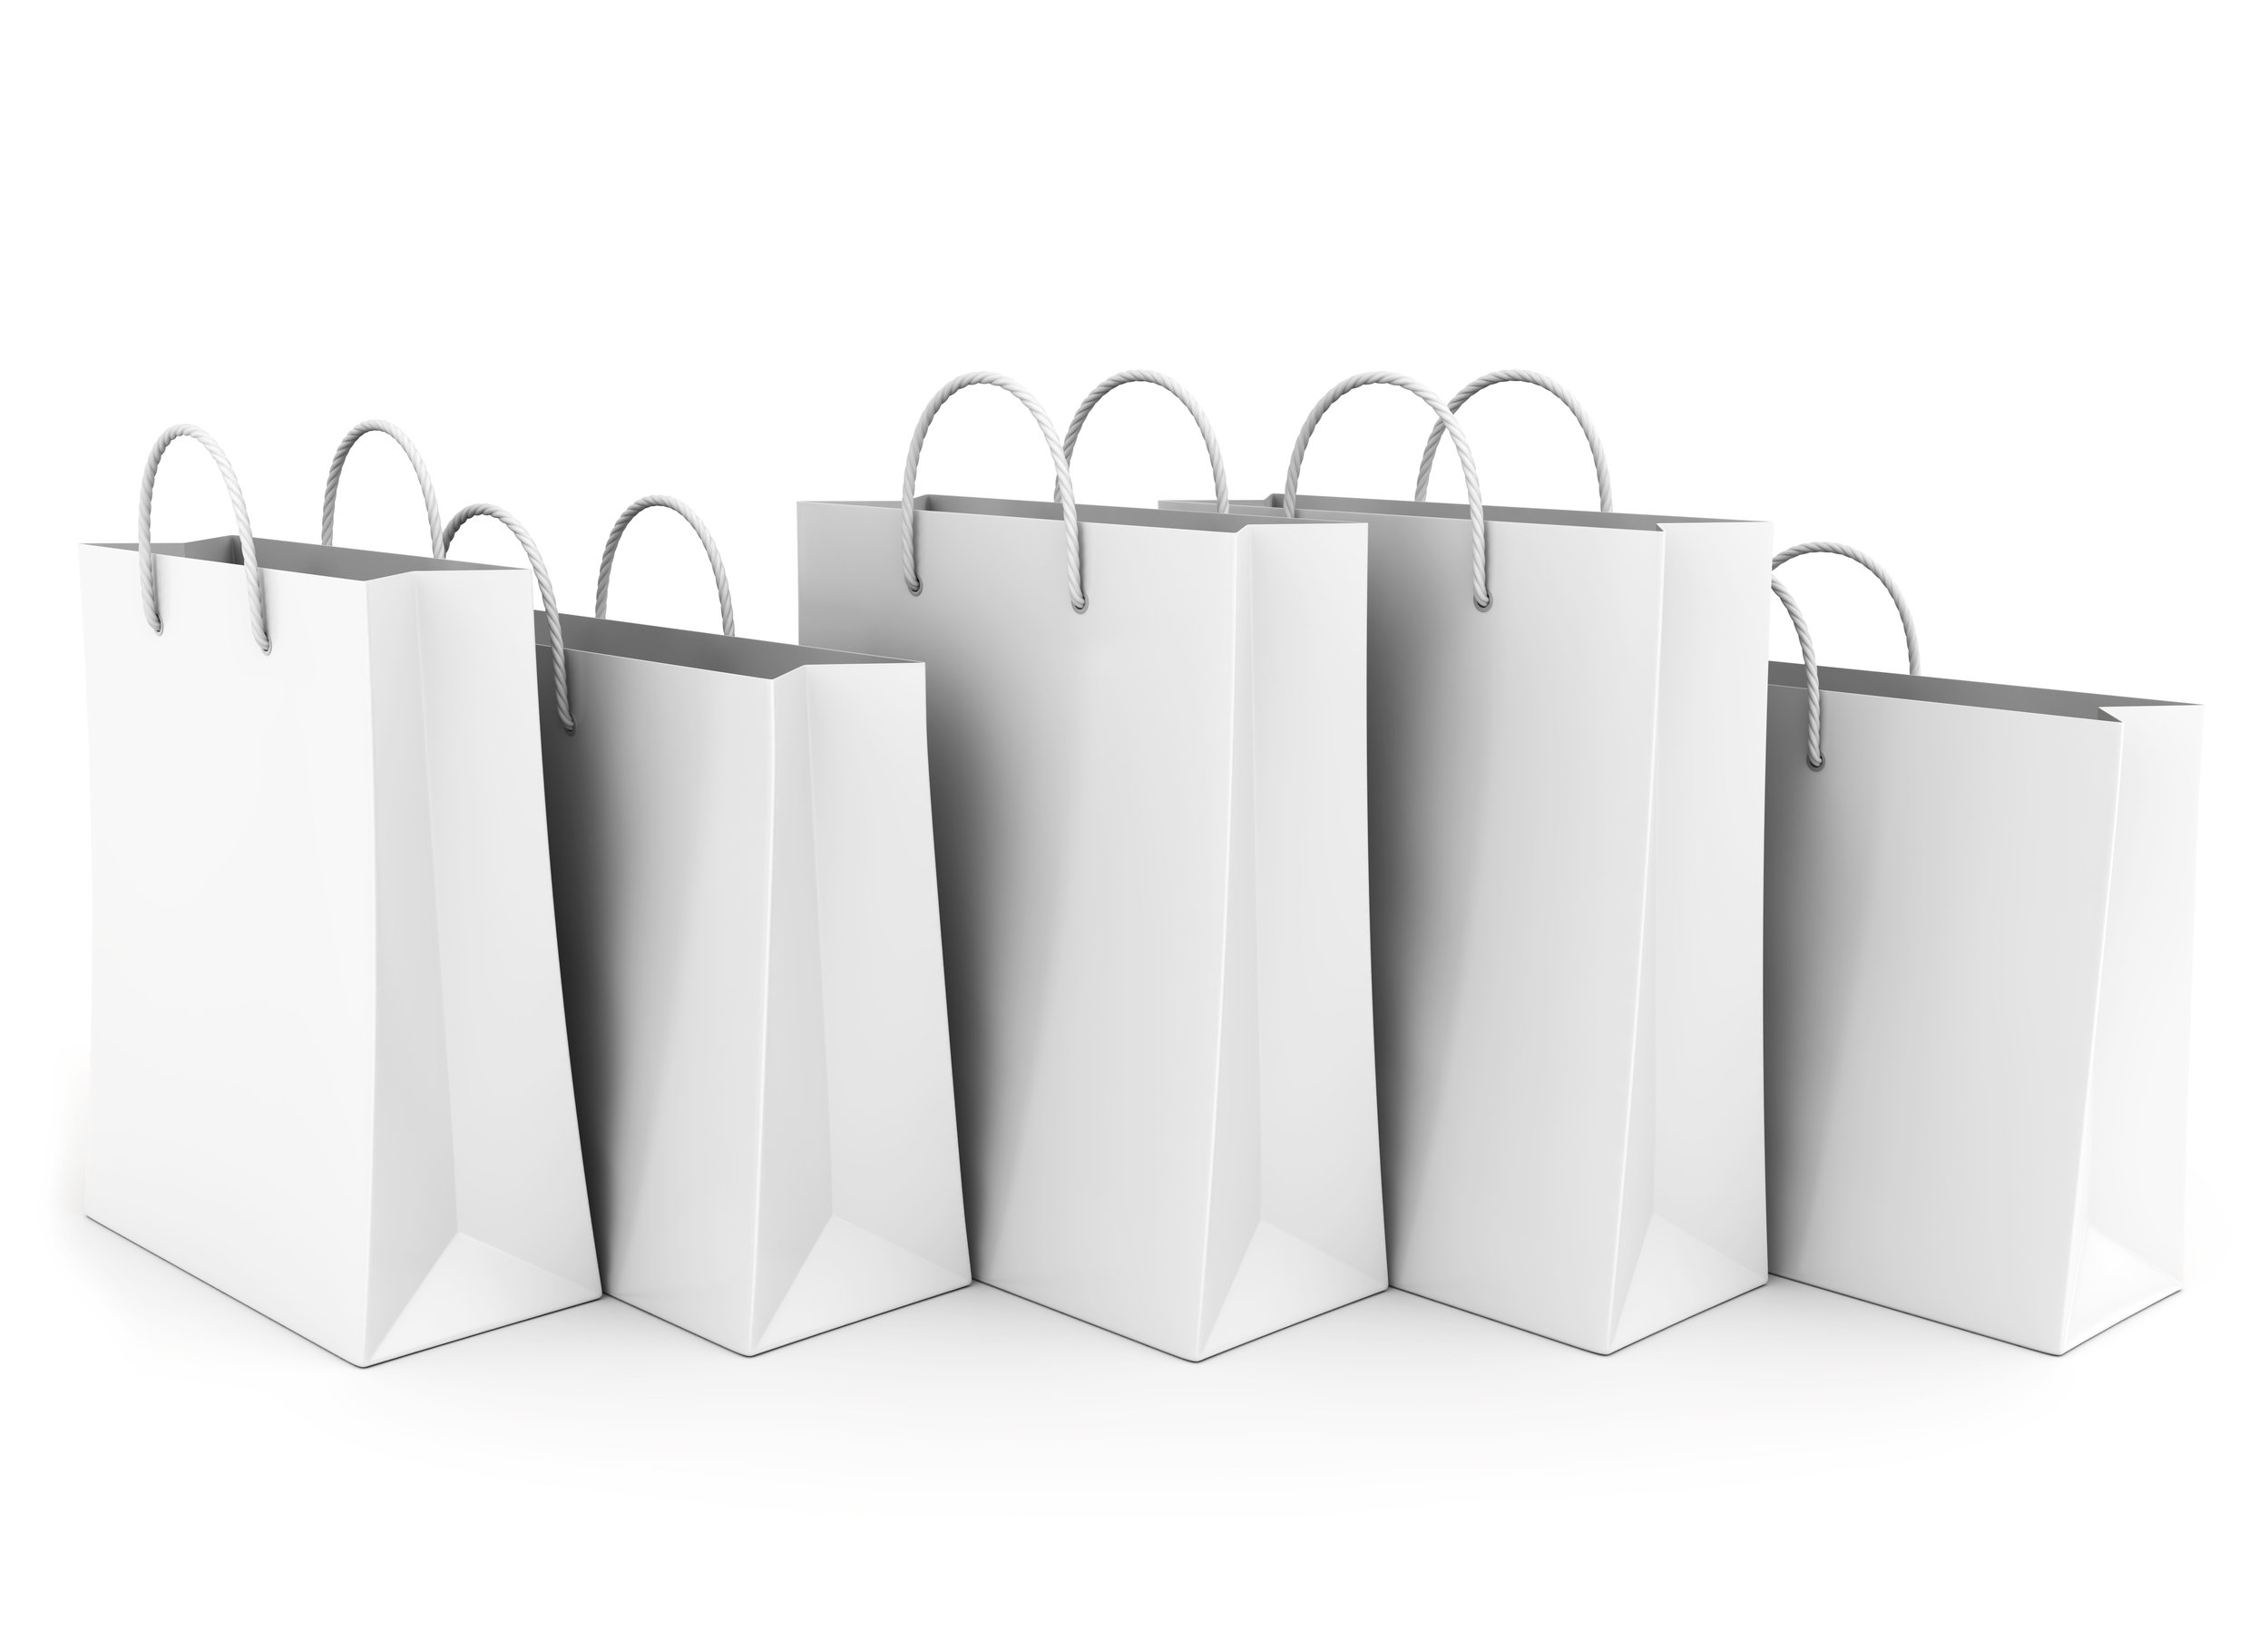 empty-shopping-bags-on-the-white-in-a-row-PYDKF5X.jpg